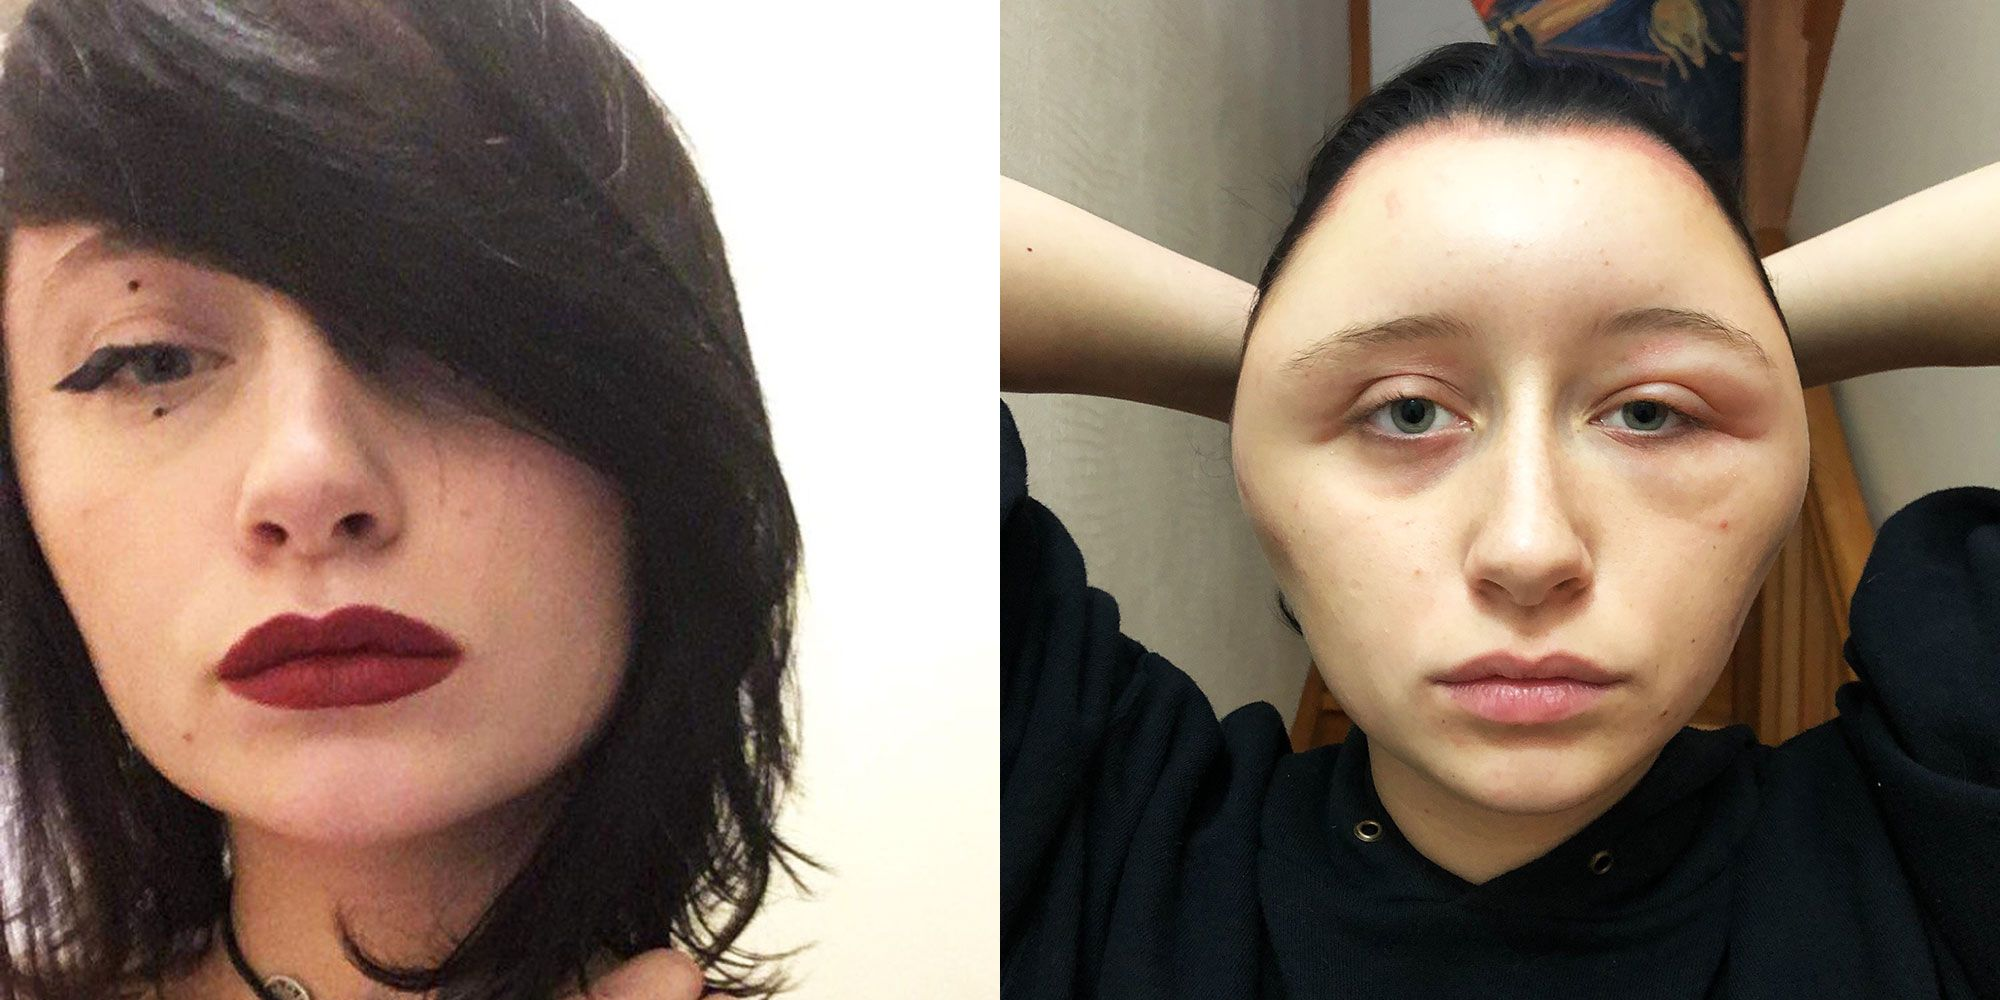 This Woman S Severe Reaction To Hair Dye Caused Her Face Swell Up Like A Lighbulb